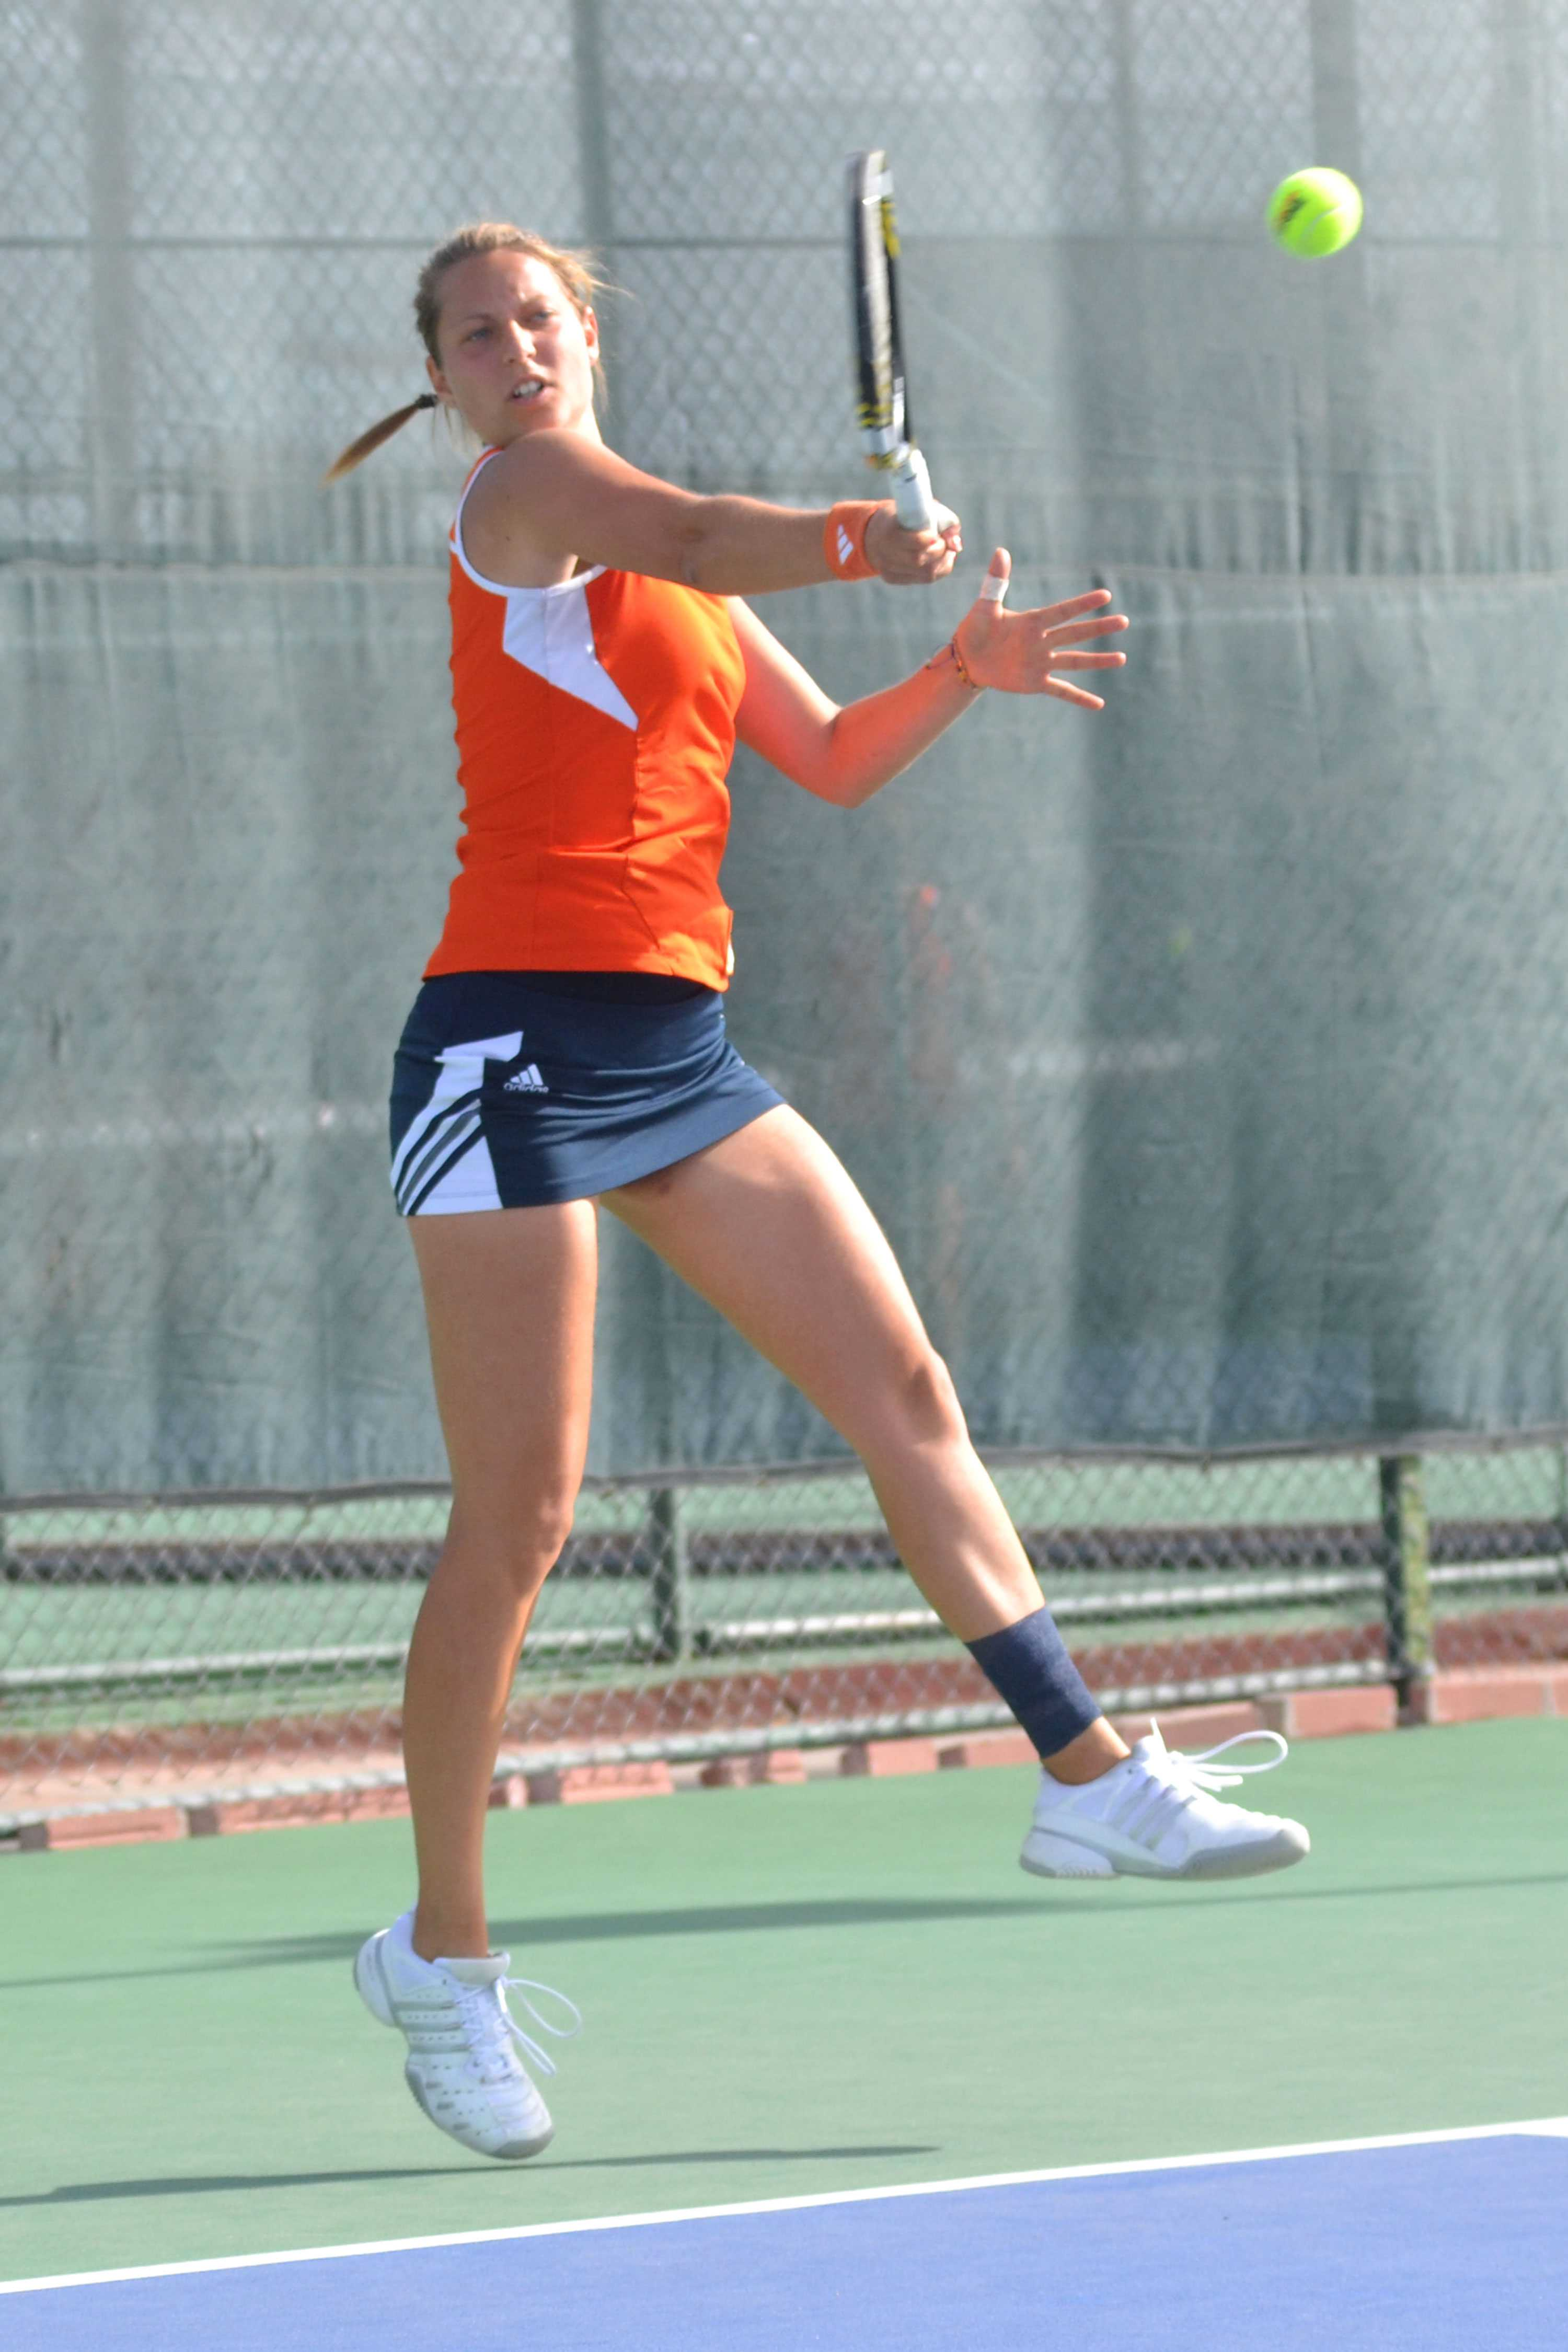 Senior Marie Leblond  hits a forehand against the Louisiana Monroe Warhawks on March 29 at the UTEP Tennis Complex.